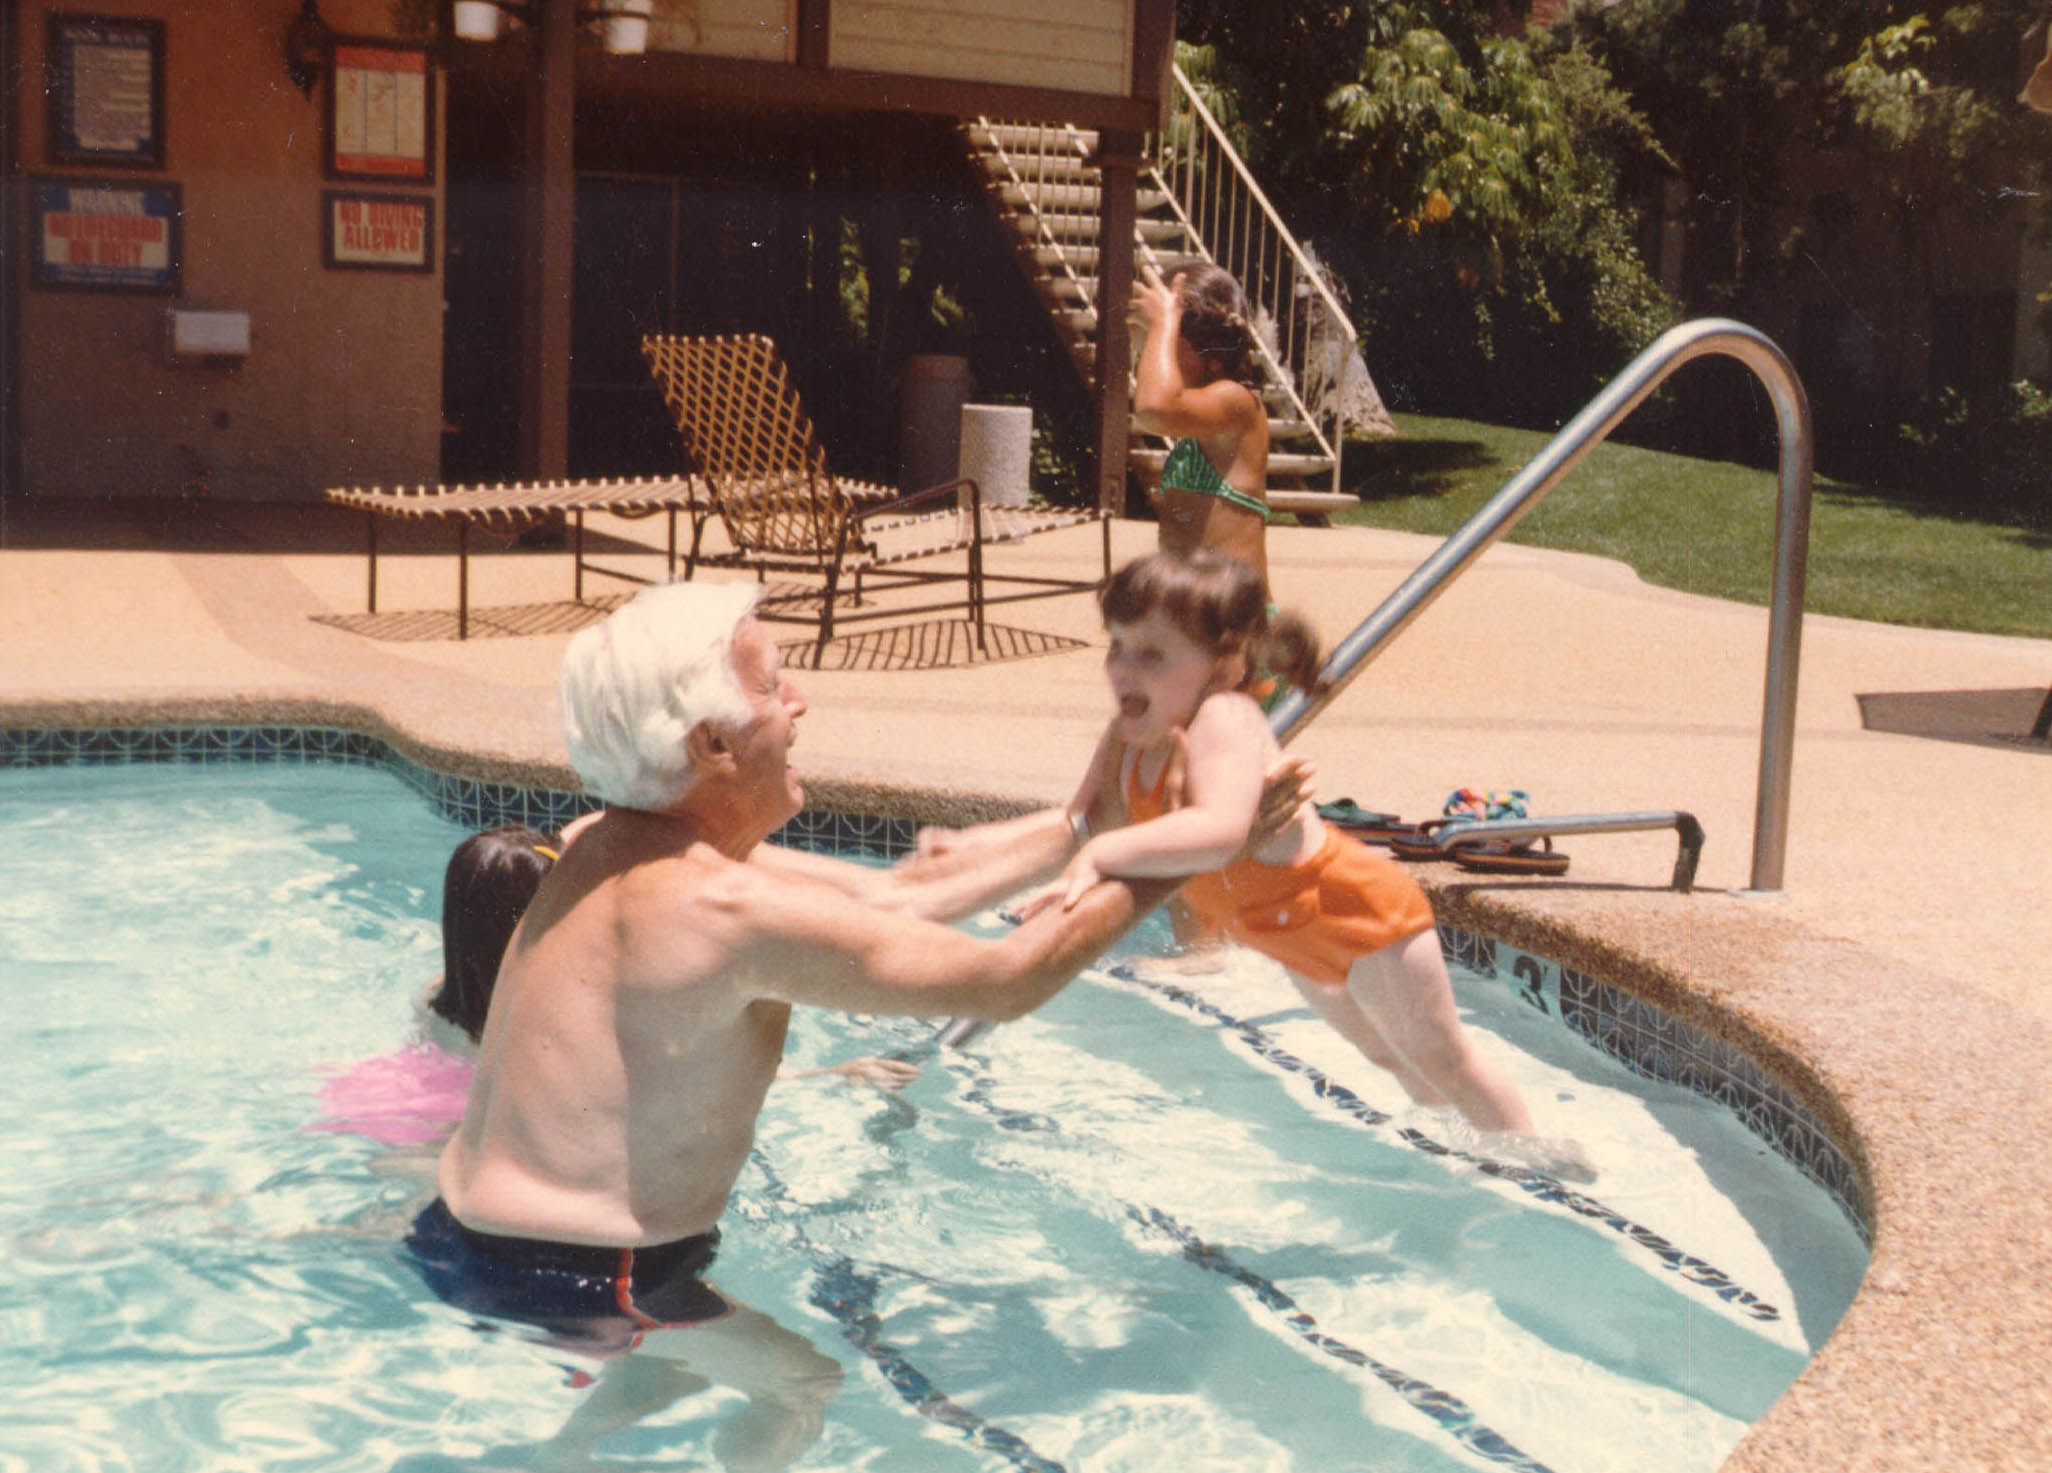 Harry teaching granddaughter Alexis Danielle how to swim, probably in San Diego, California.